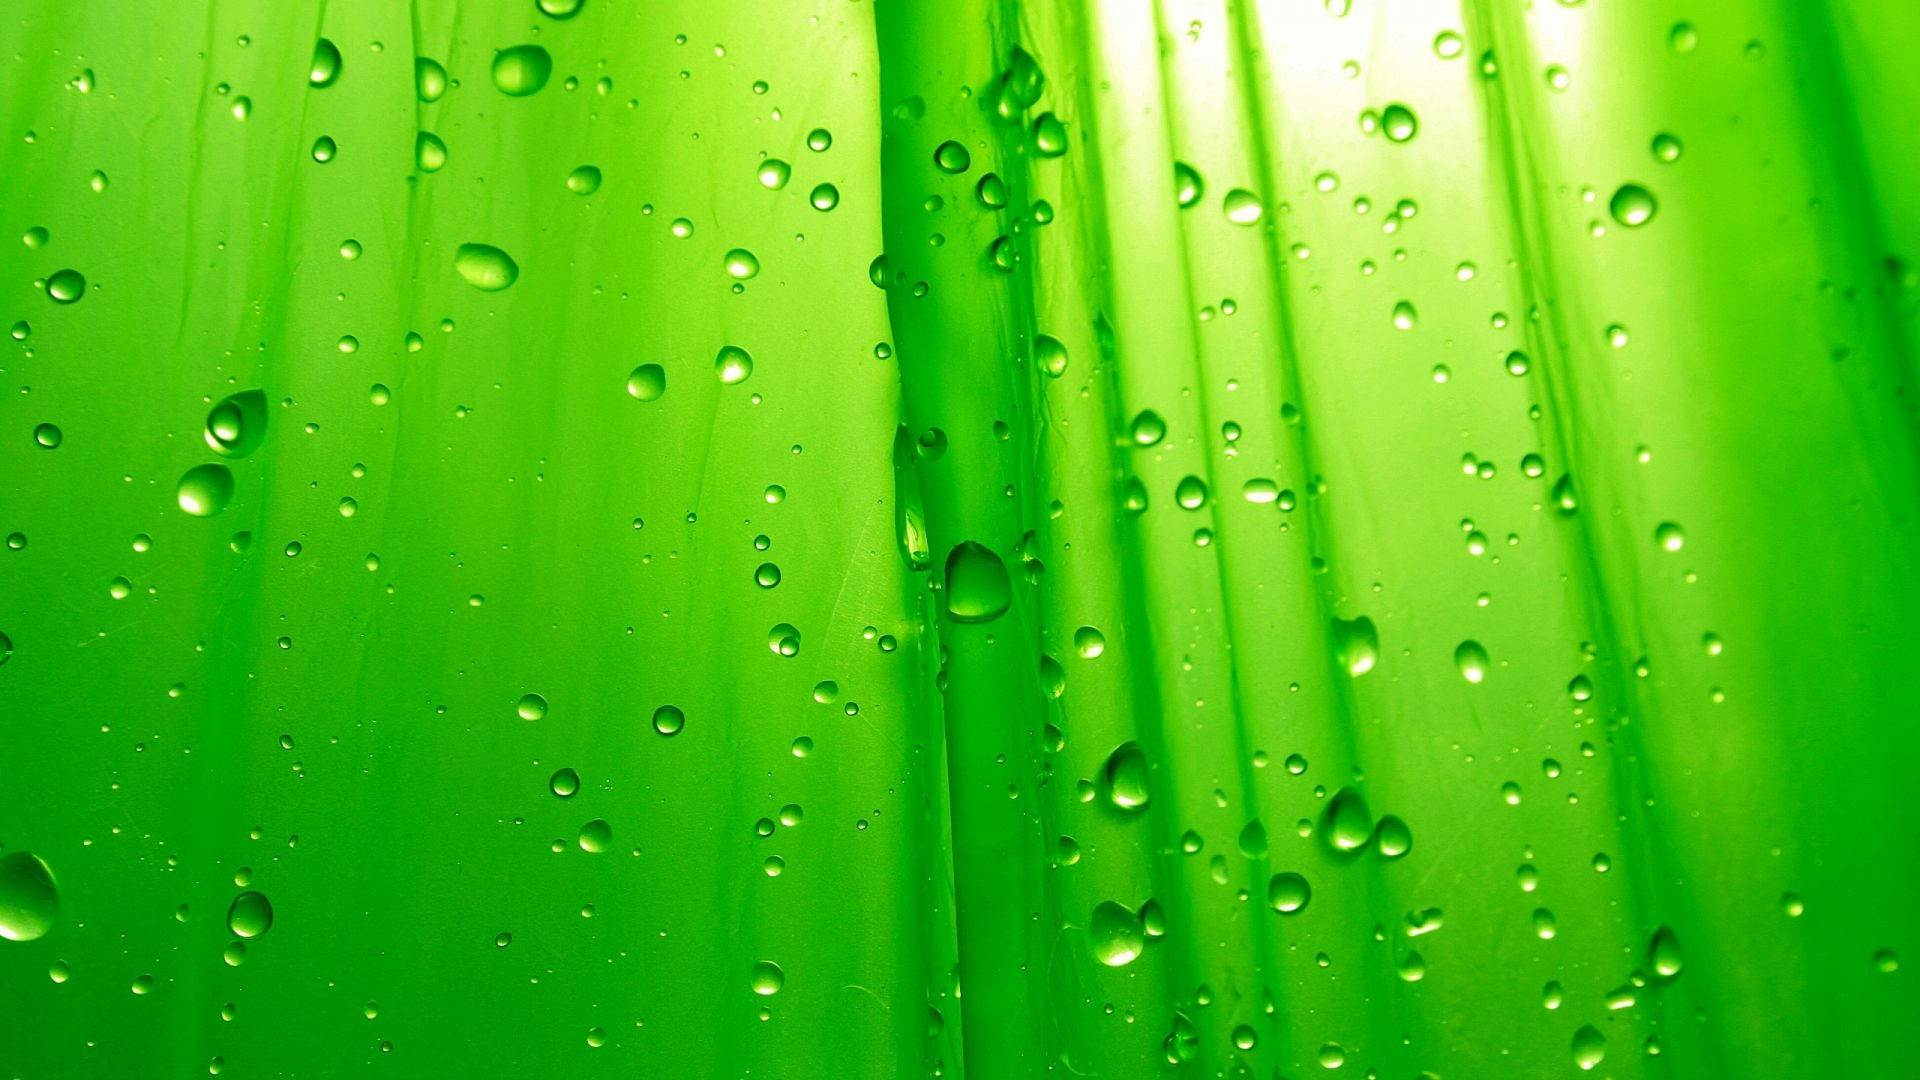 HD Green Backgrounds Wallpapers